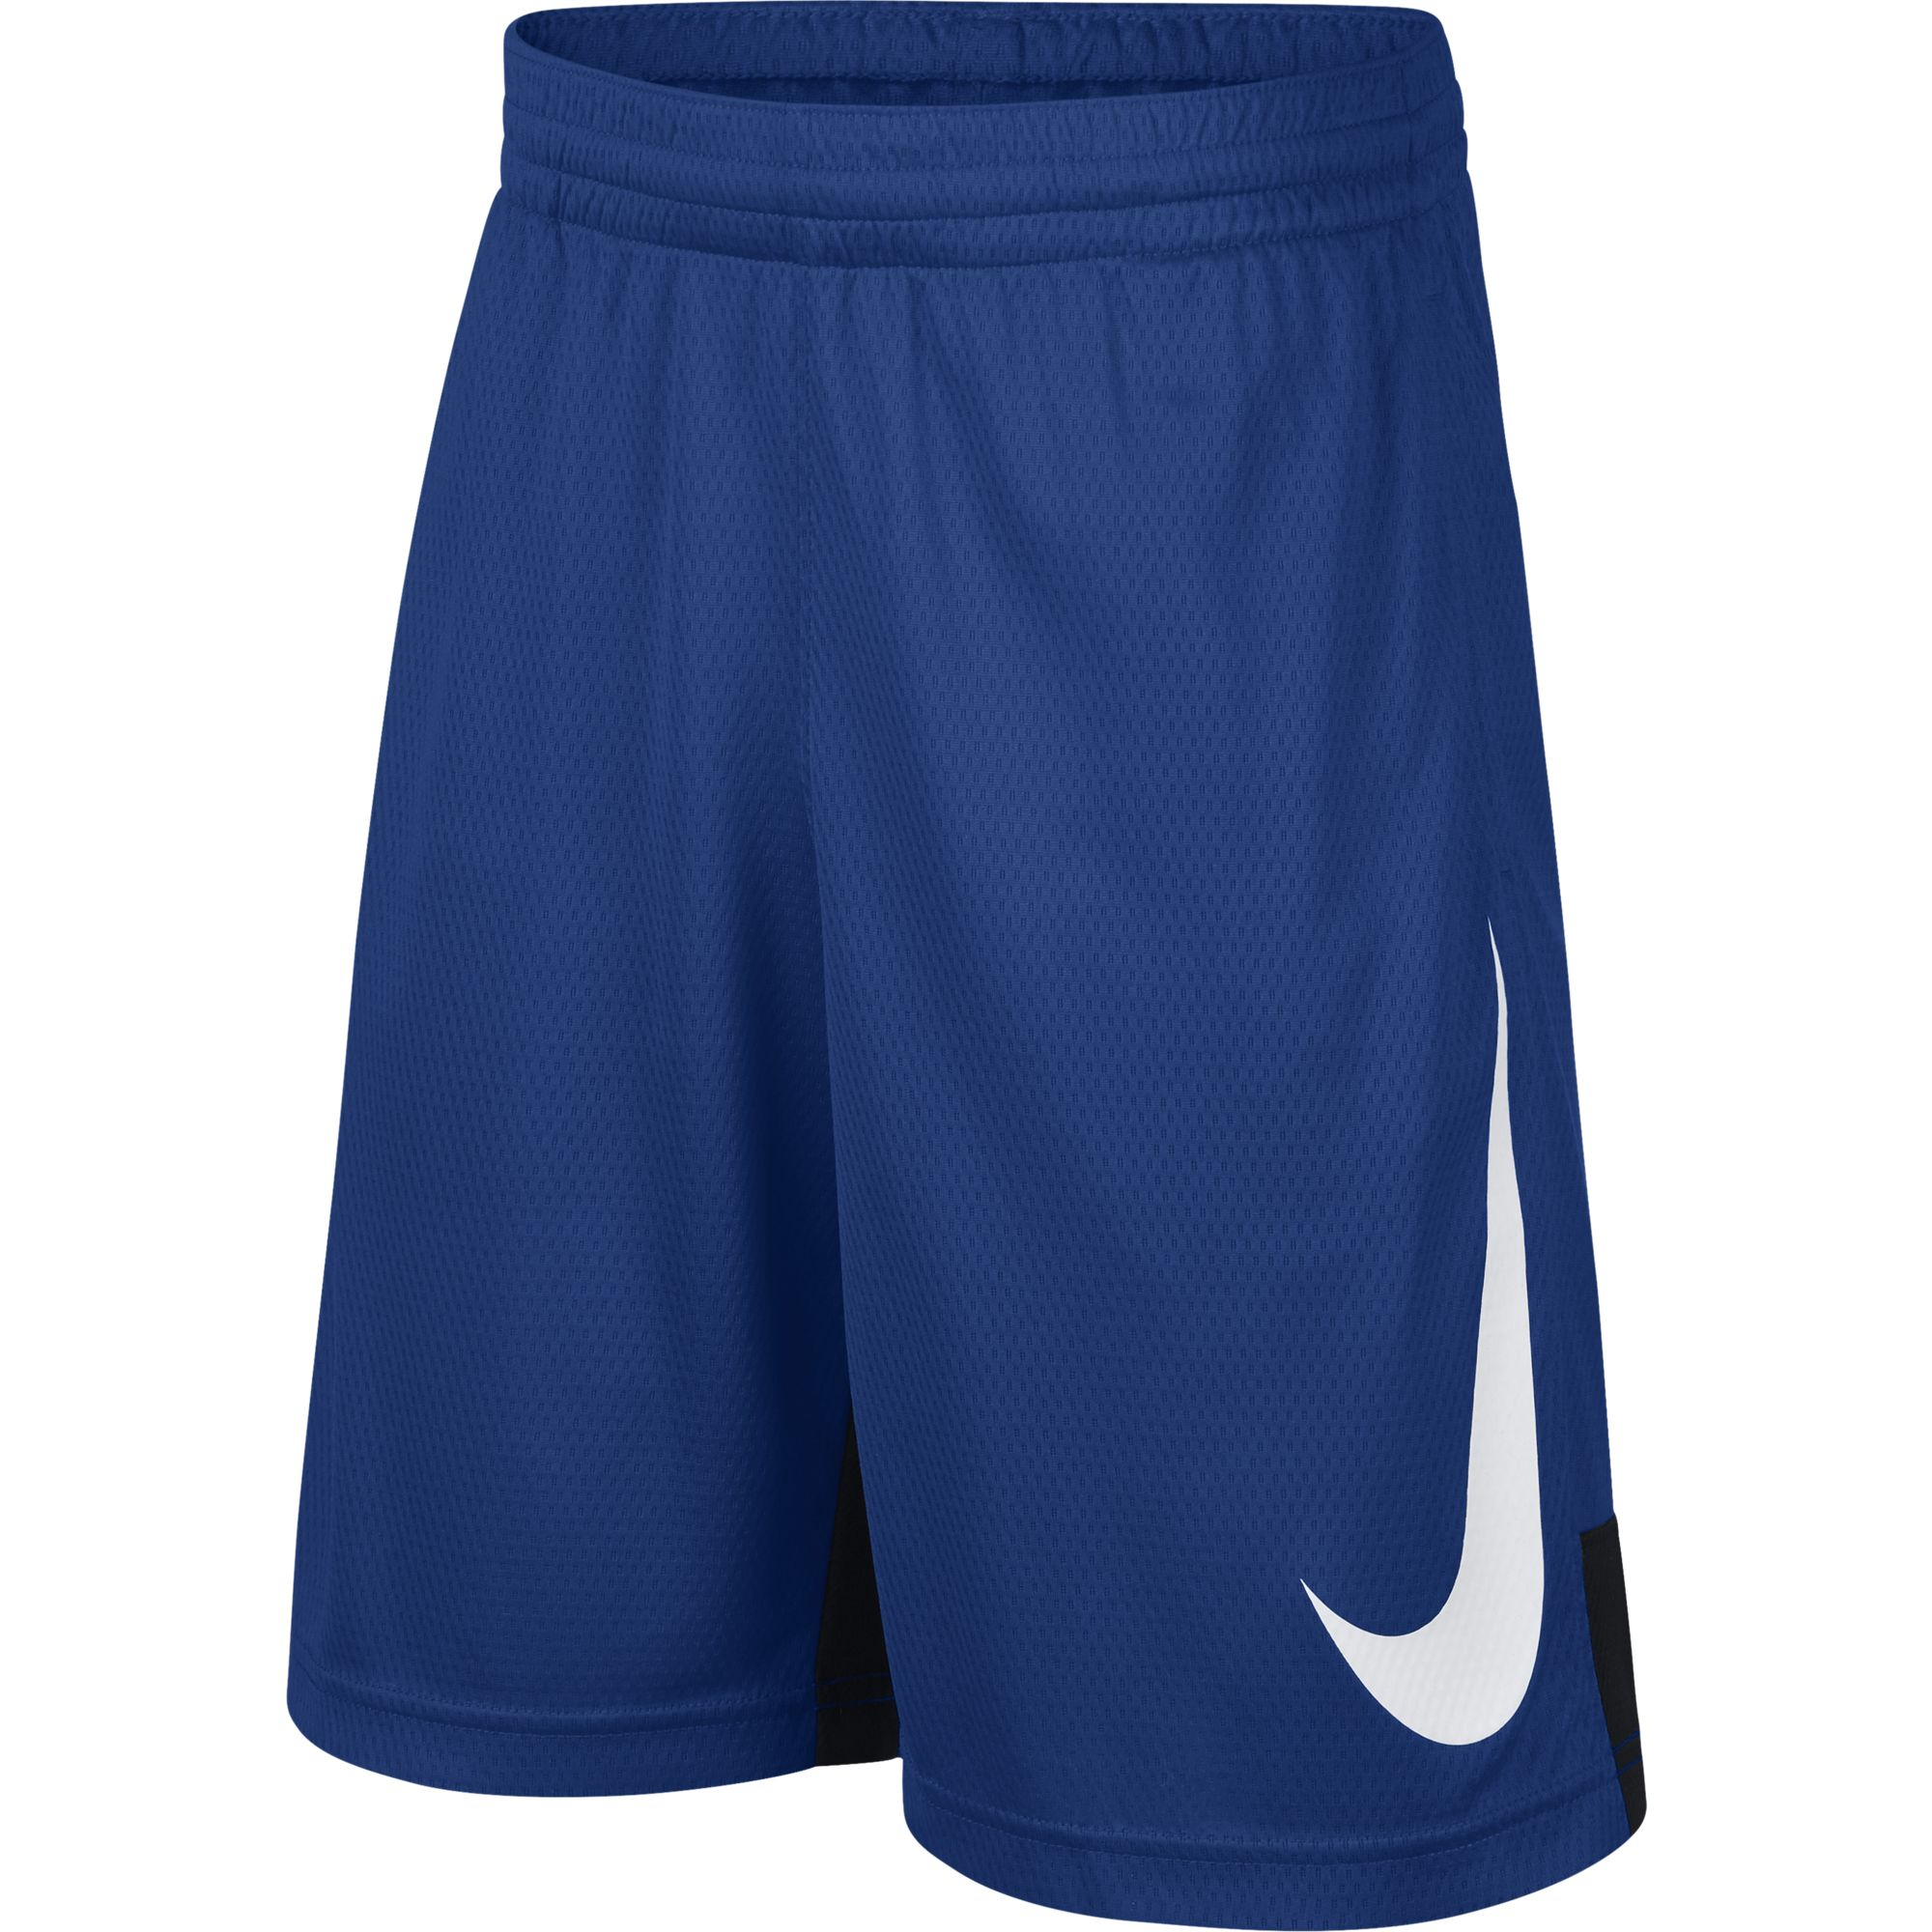 Nike Kids Dry Fit Basketball Shorts - NK-892362-438